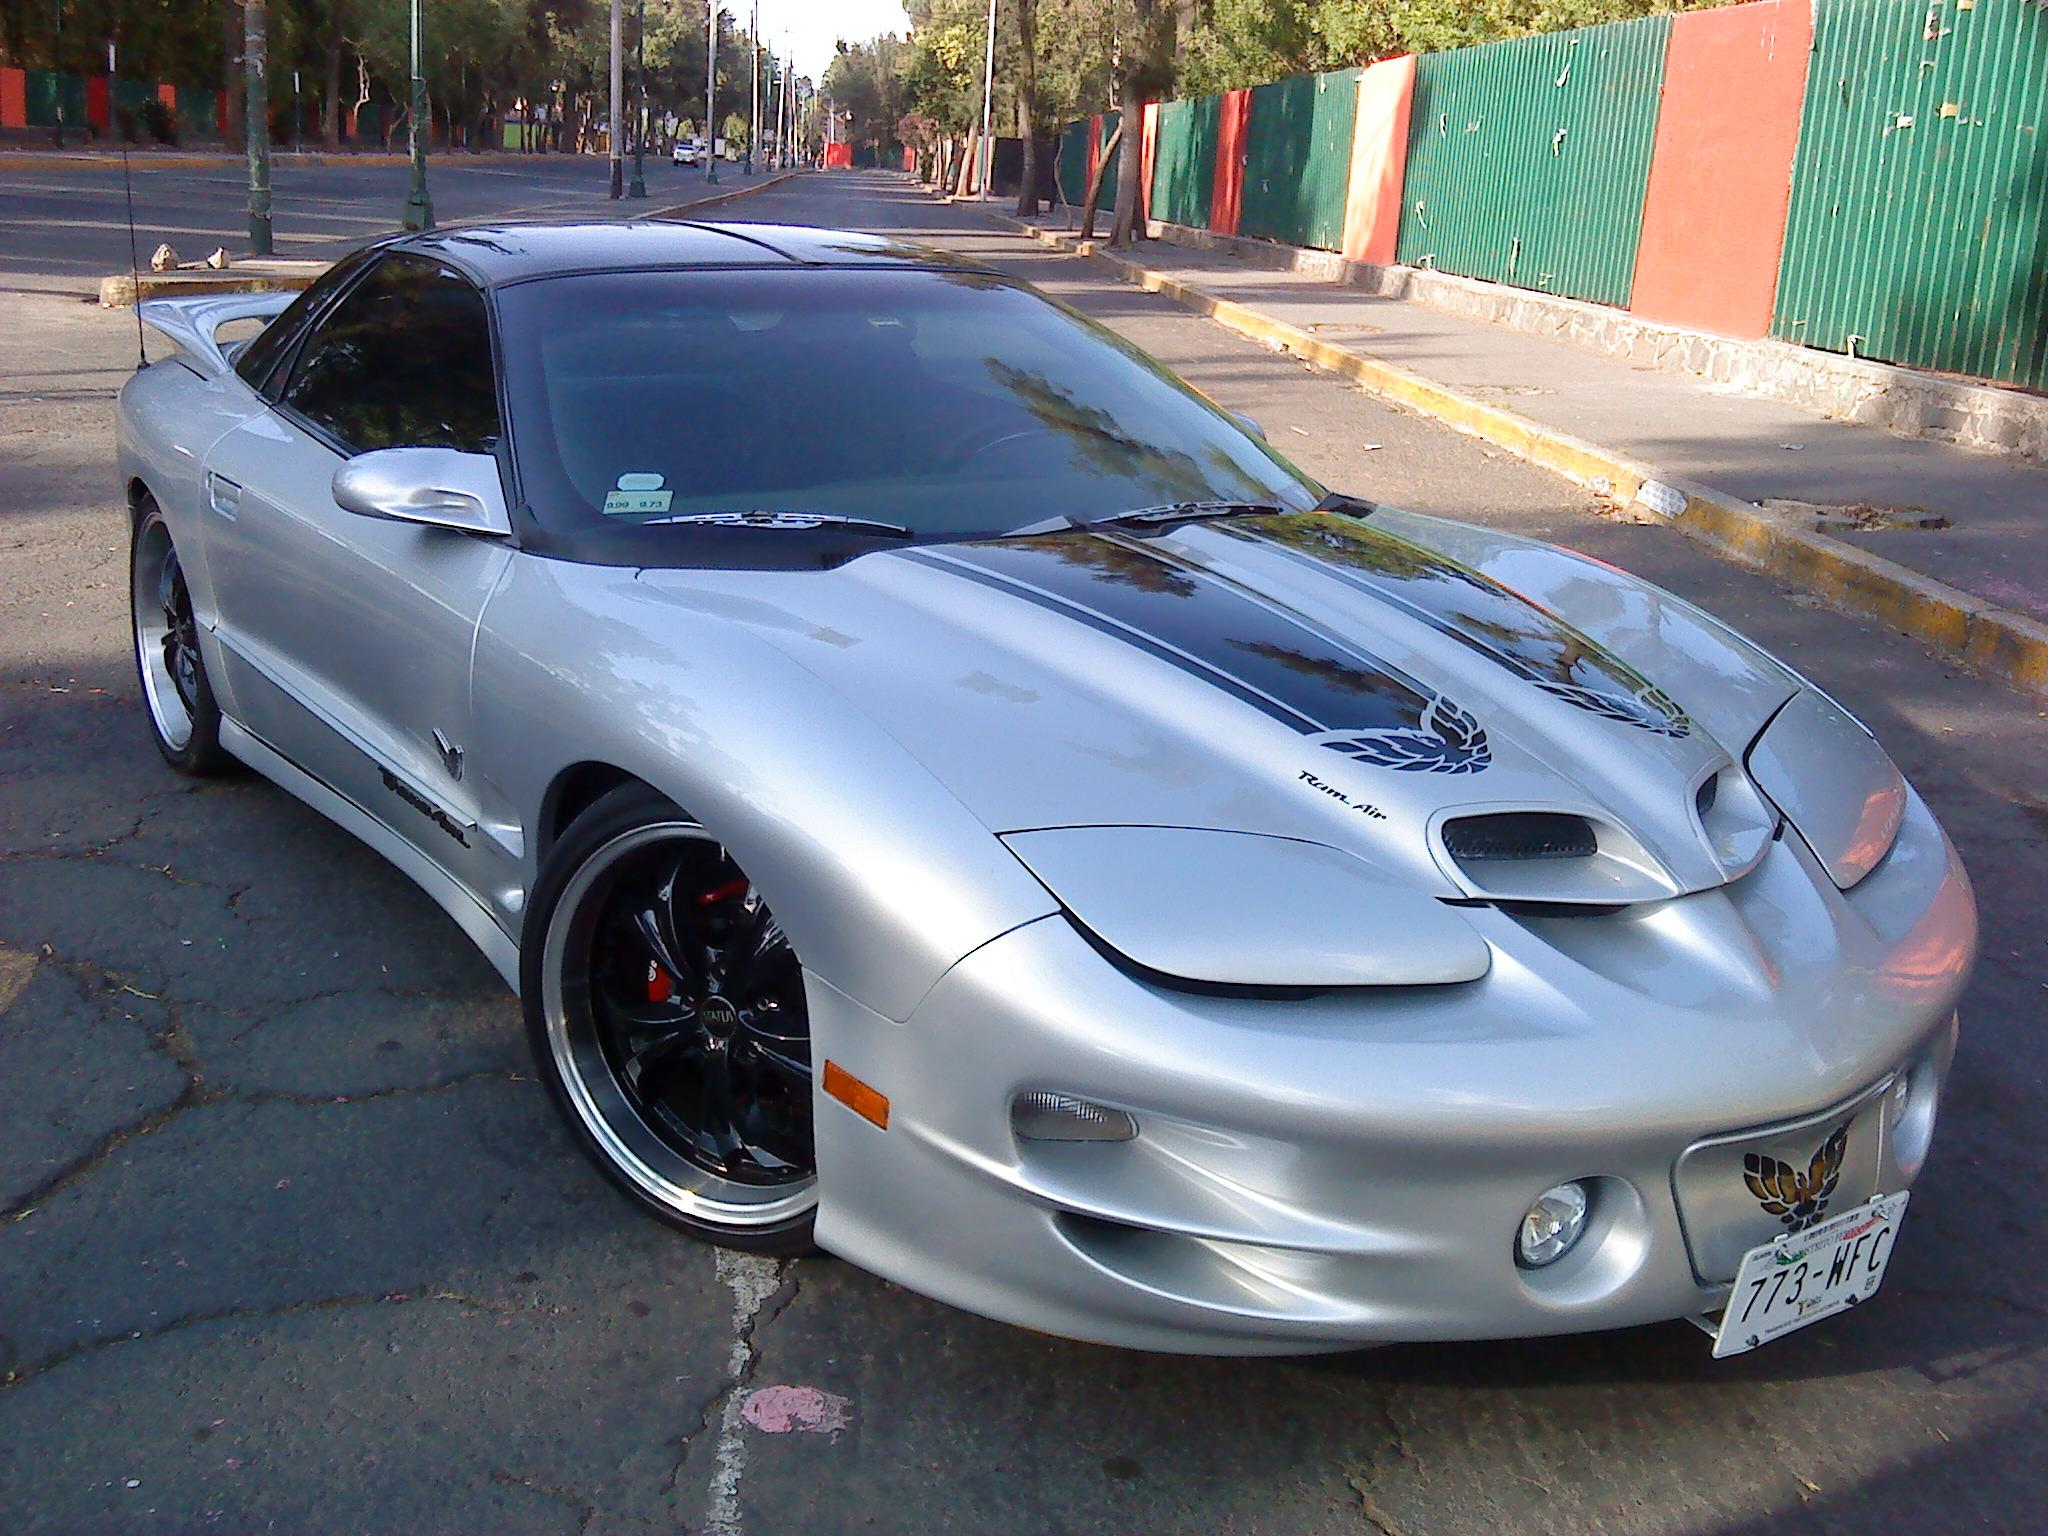 kumaware 2001 pontiac trans am specs photos modification. Black Bedroom Furniture Sets. Home Design Ideas